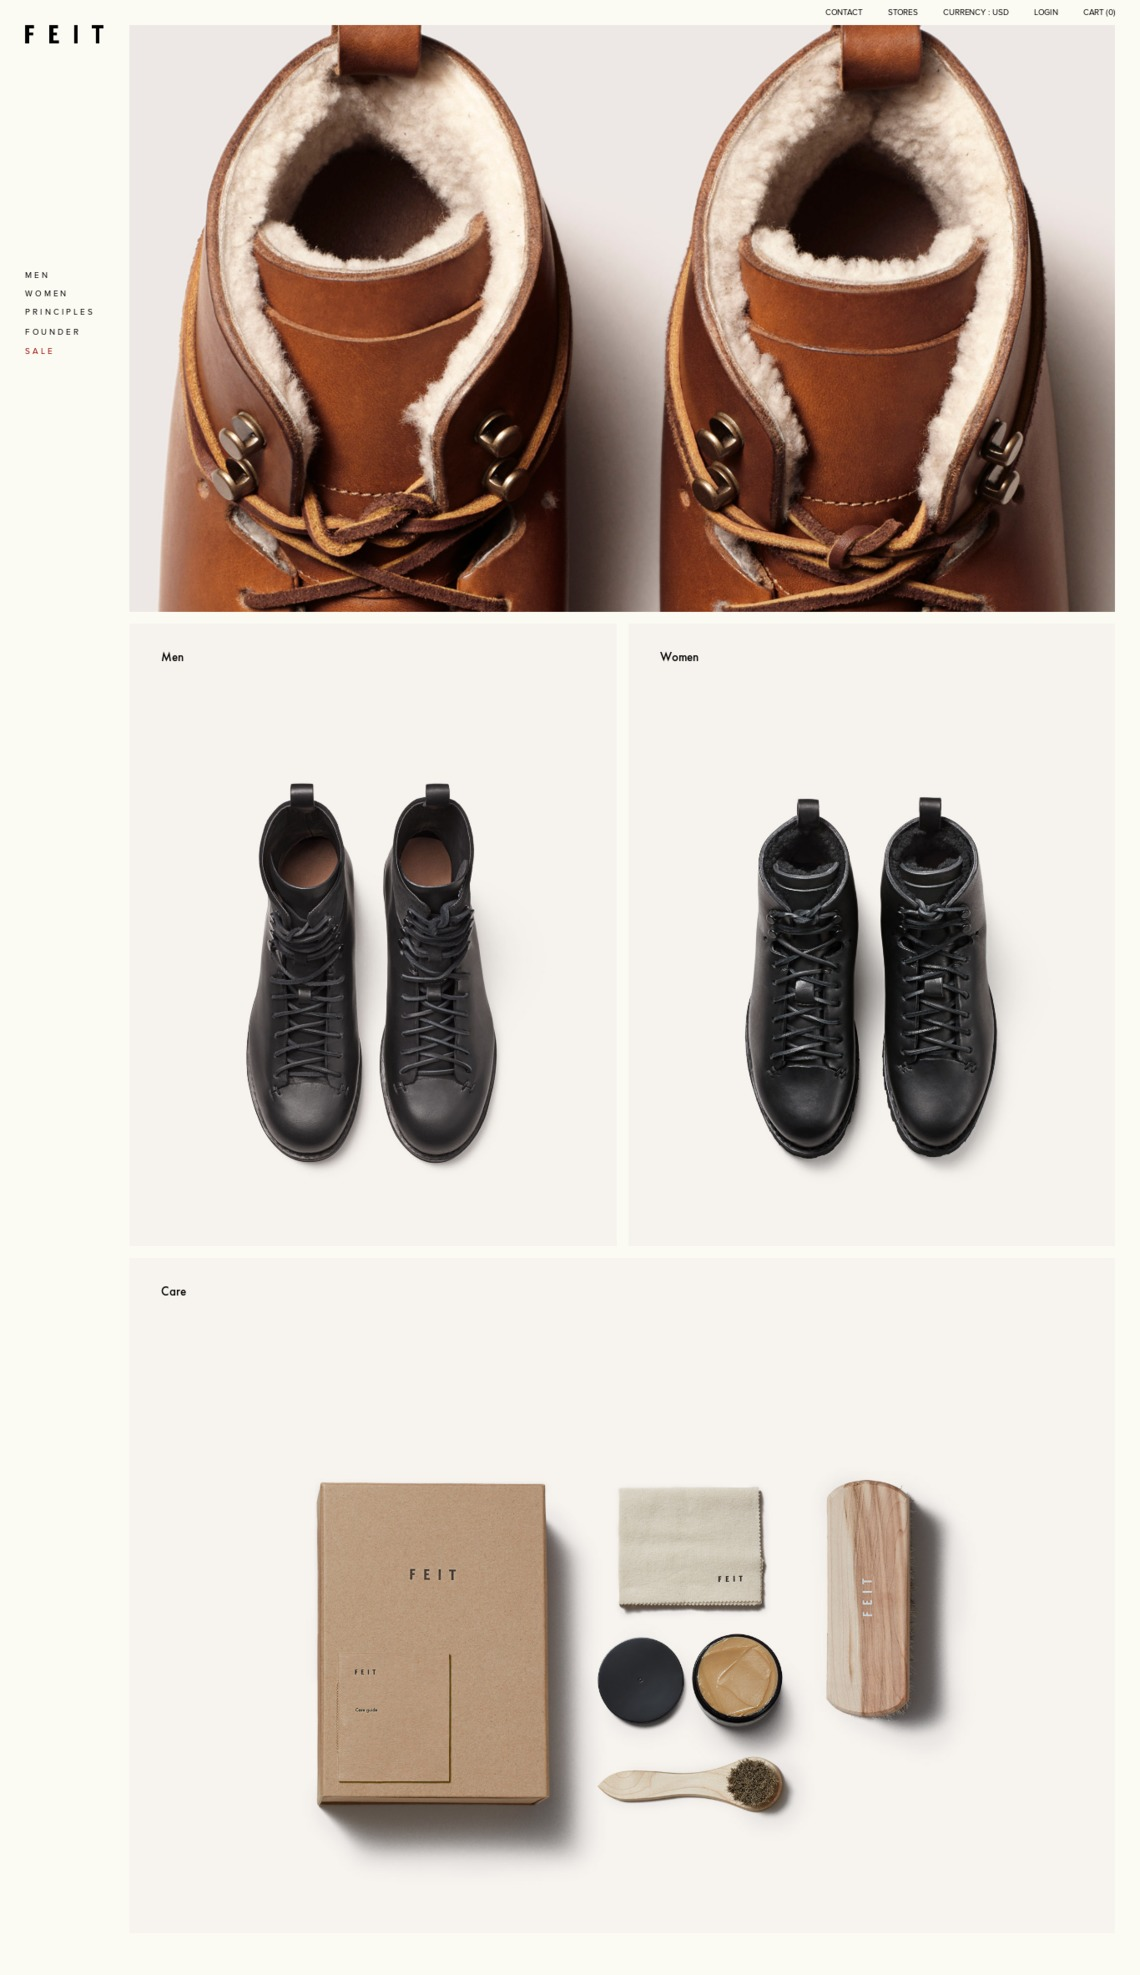 FEIT Direct Handmade Leather Shoes & Accessories